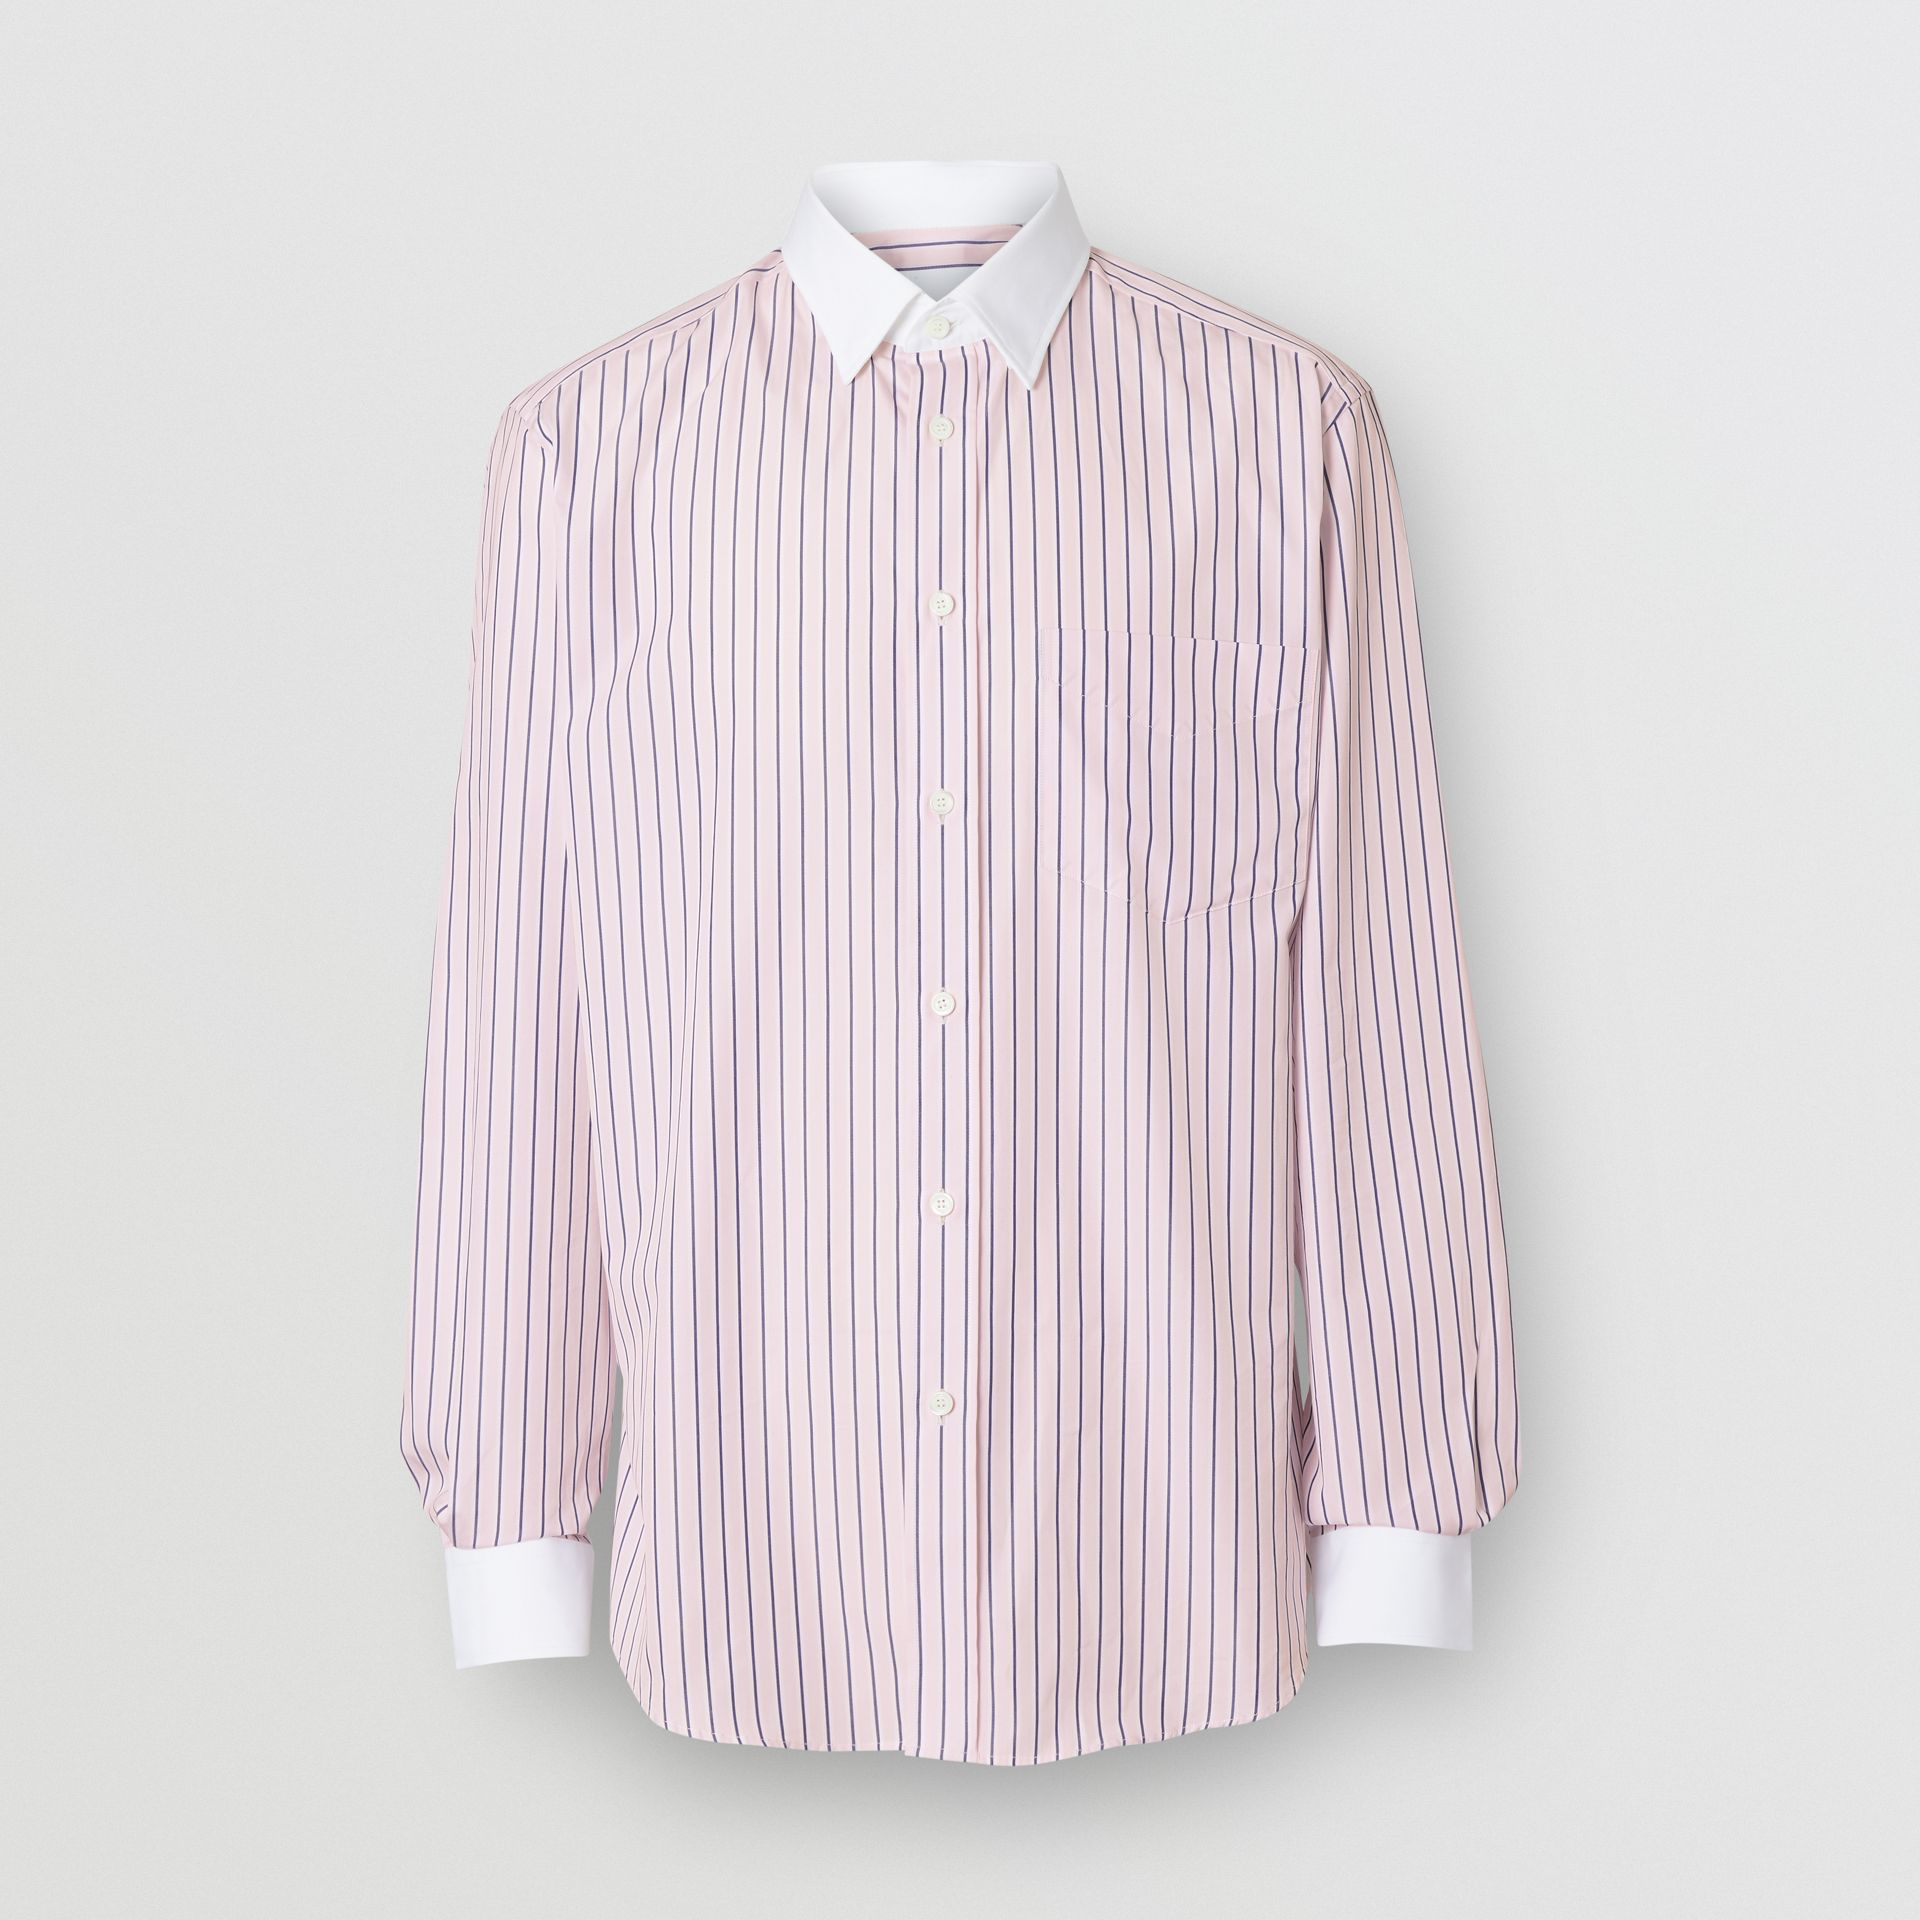 Classic Fit Monogram Motif Striped Cotton Shirt in Alabaster Pink - Men | Burberry - gallery image 3